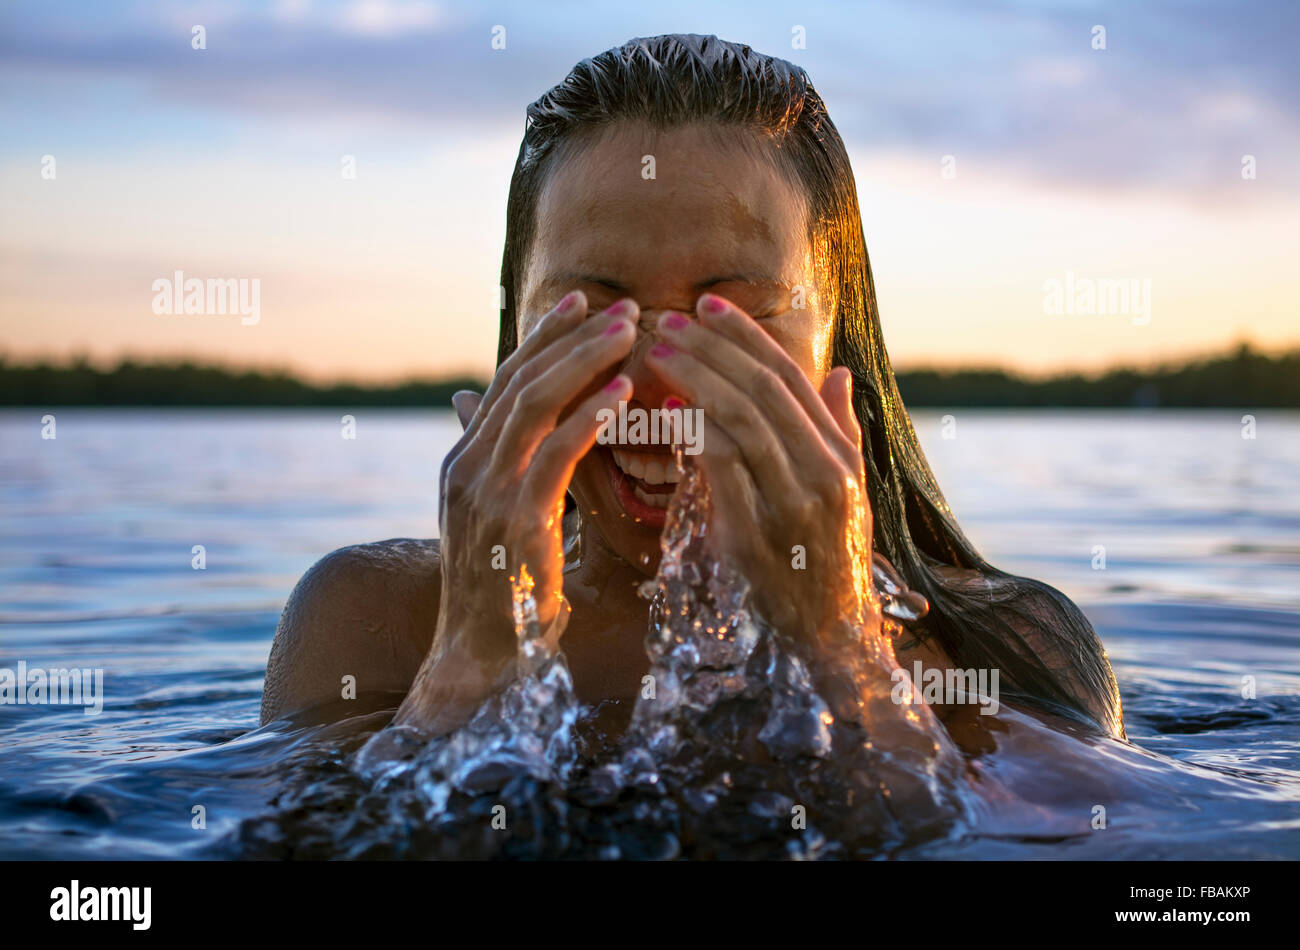 Finland, Pohjanmaa, Luoto, Young woman coming out of water - Stock Image